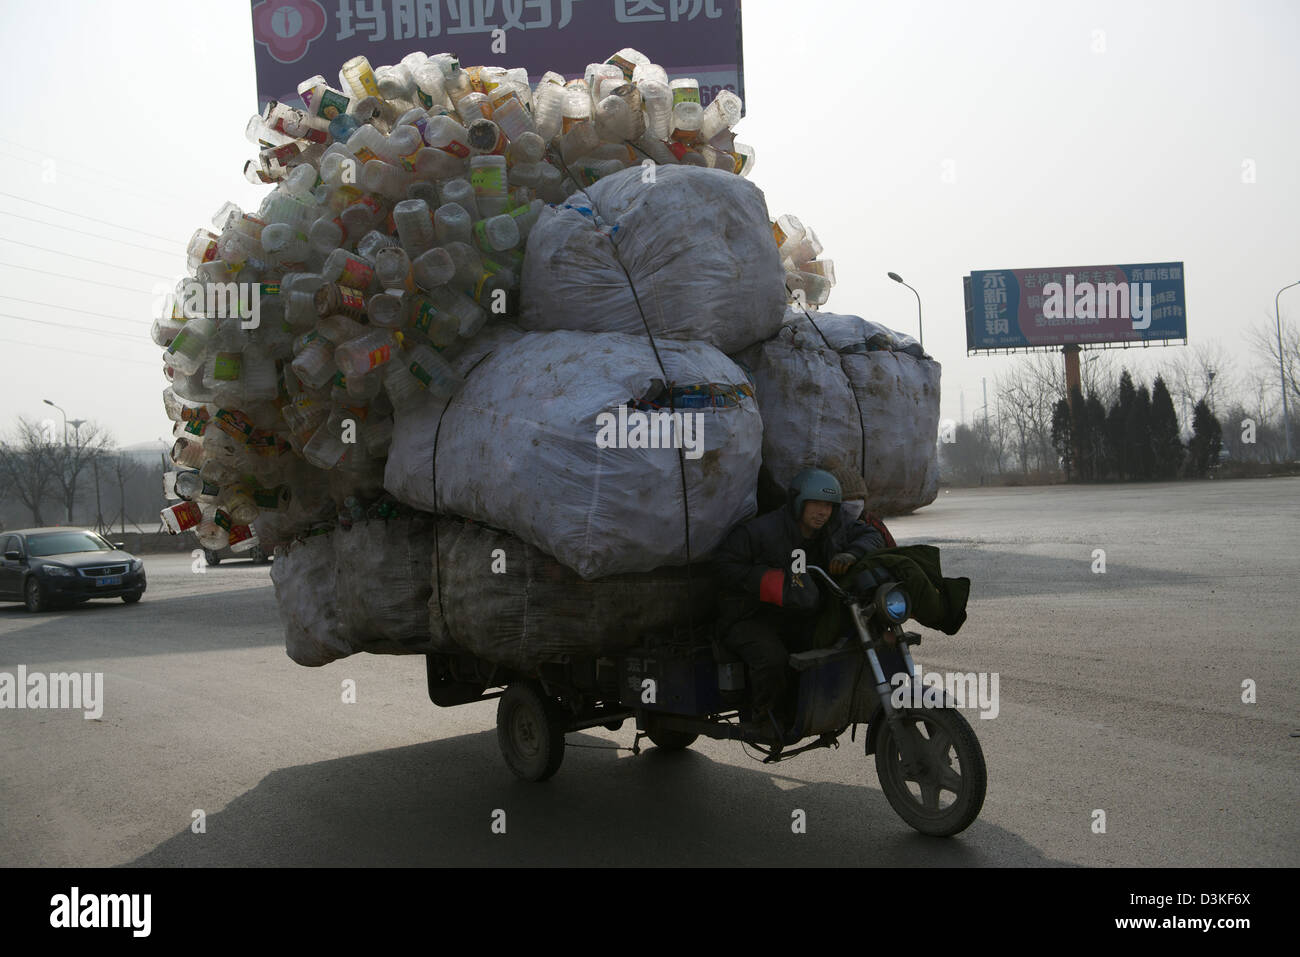 A motor tricycle loaded with recyclable plastic bottles drives along a street in a town in Hebei province, China. - Stock Image